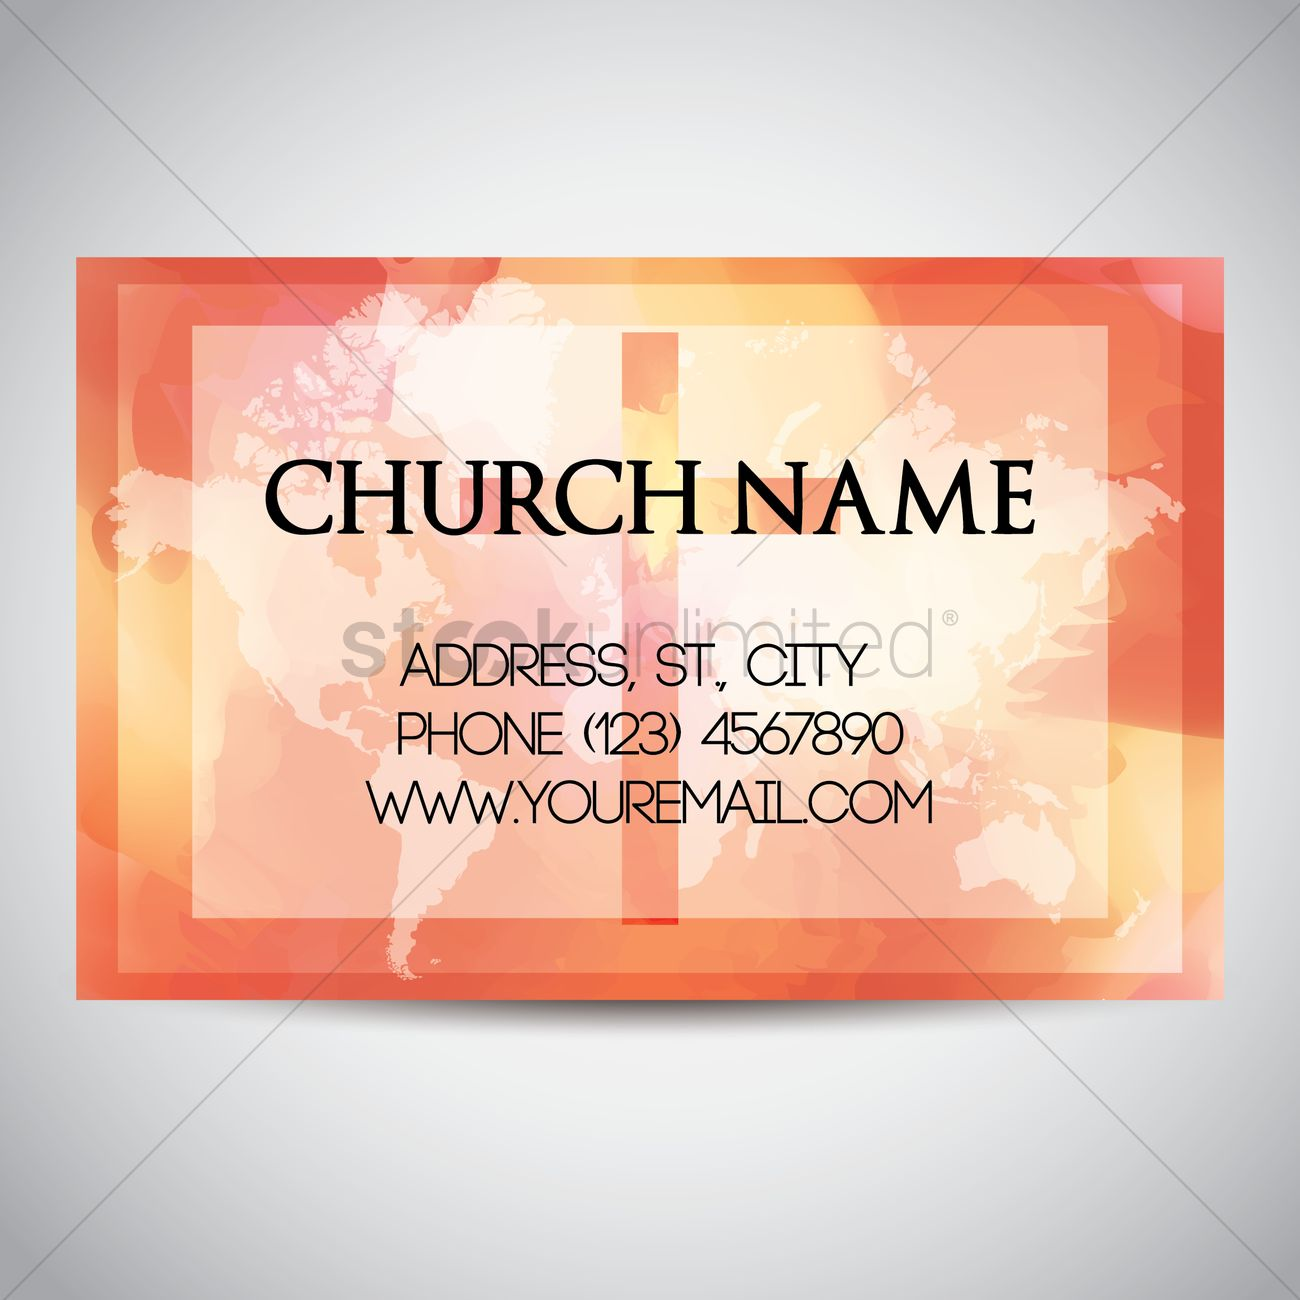 church name card template design vector image 1964366 stockunlimited